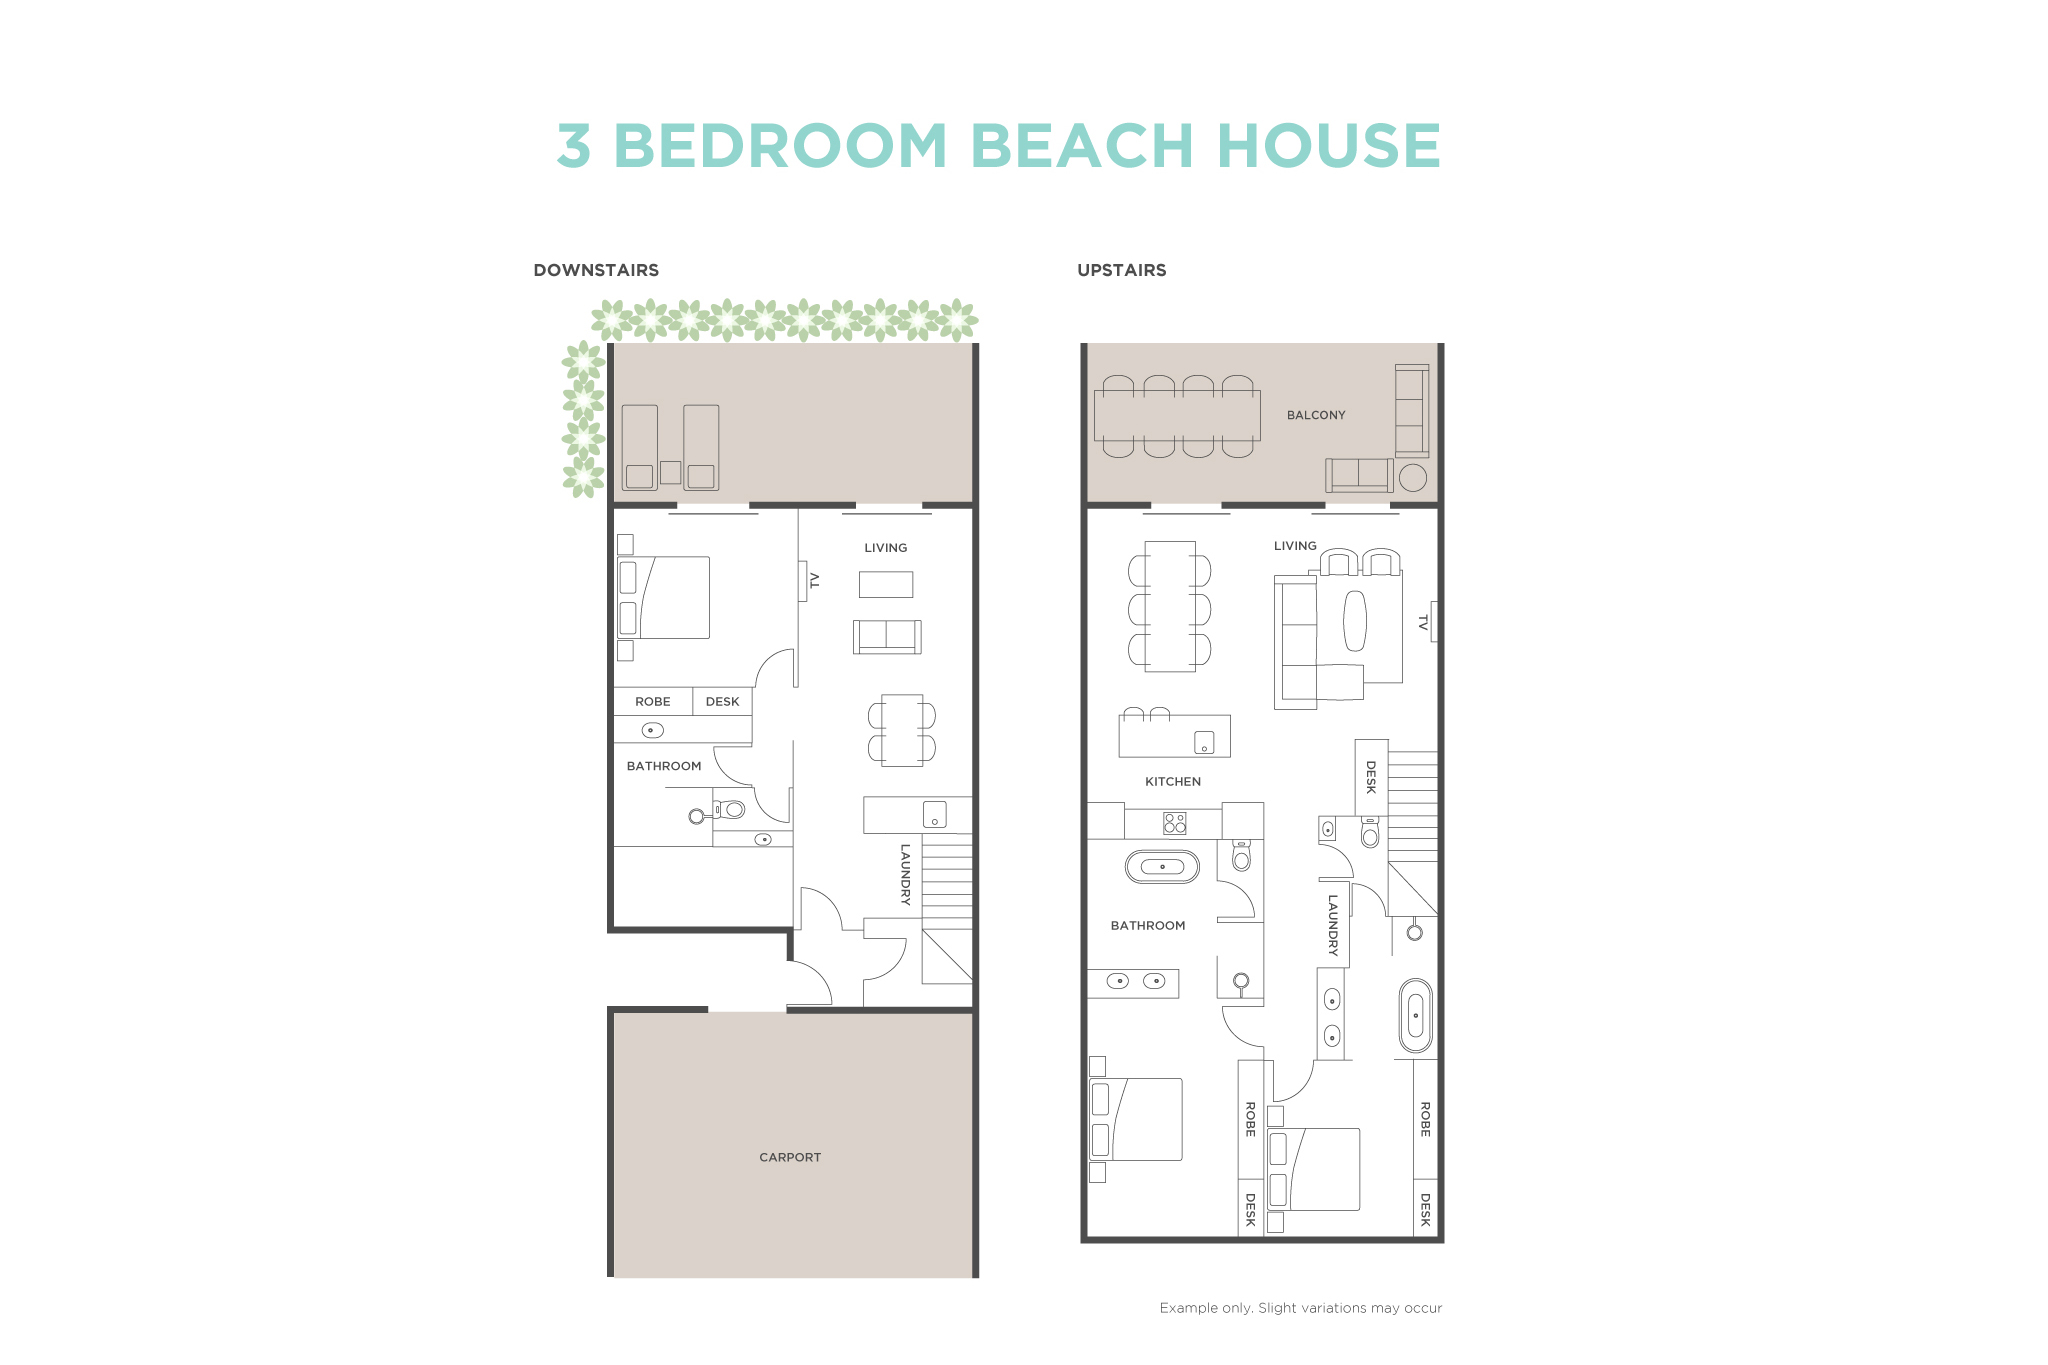 3 Bedroom Beach House floor plan